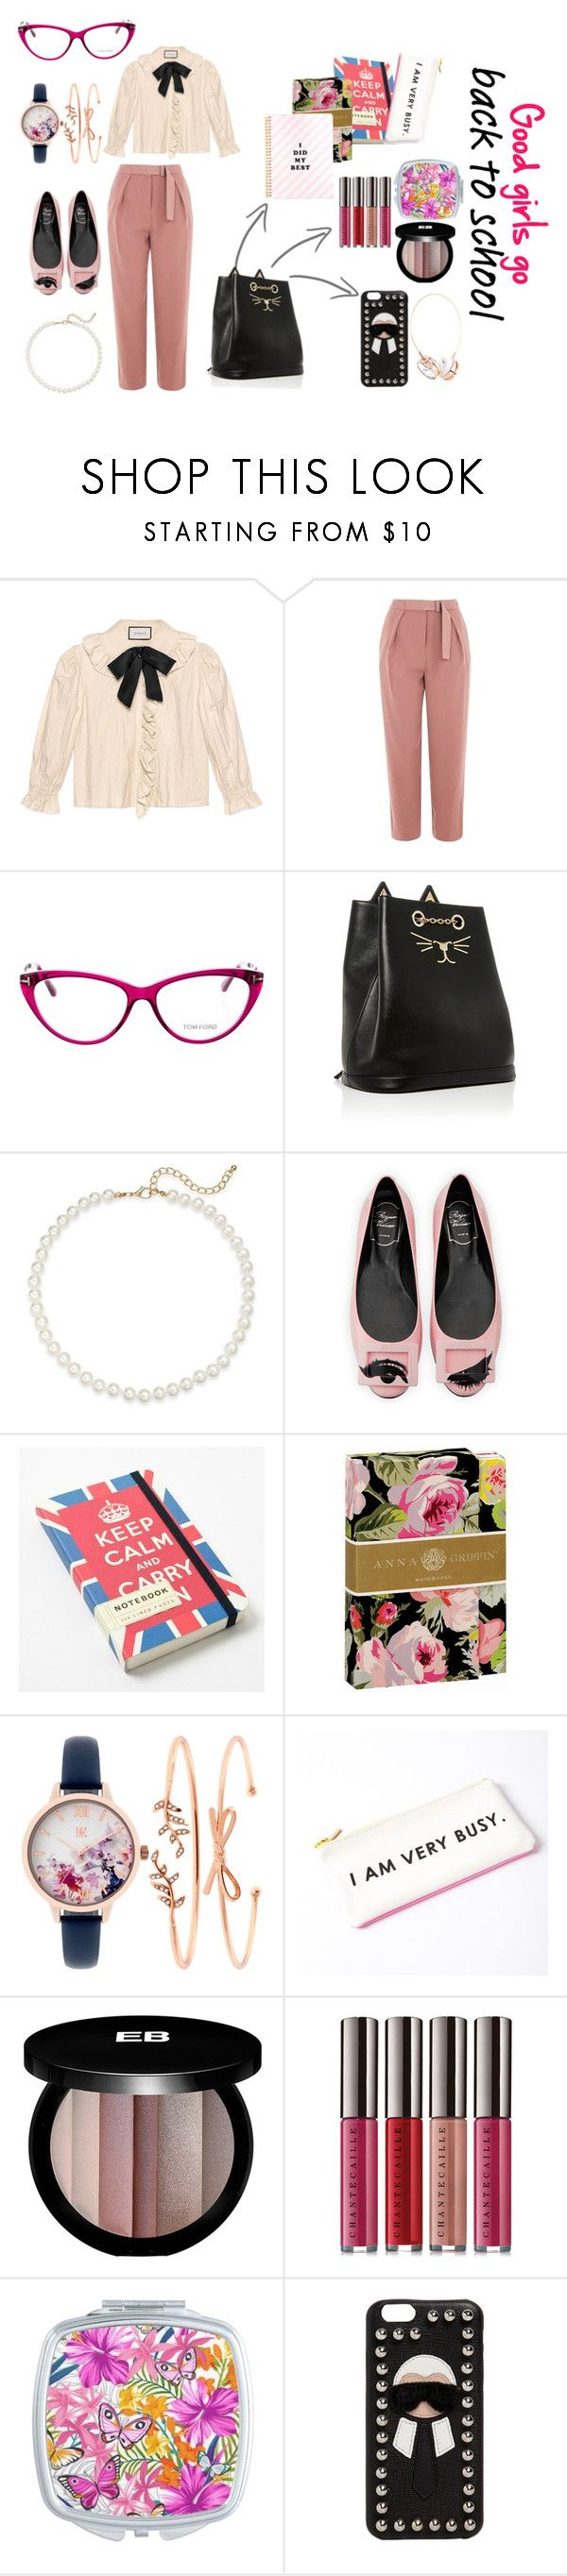 """""""Good girls go back to school"""" by jomax ❤ liked on Polyvore featuring Gucci, Topshop, Tom Ford, Saks Fifth Avenue, Roger Vivier, Cavallini & Co., Anna Griffin, INC International Concepts, Edward Bess and Chantecaille"""